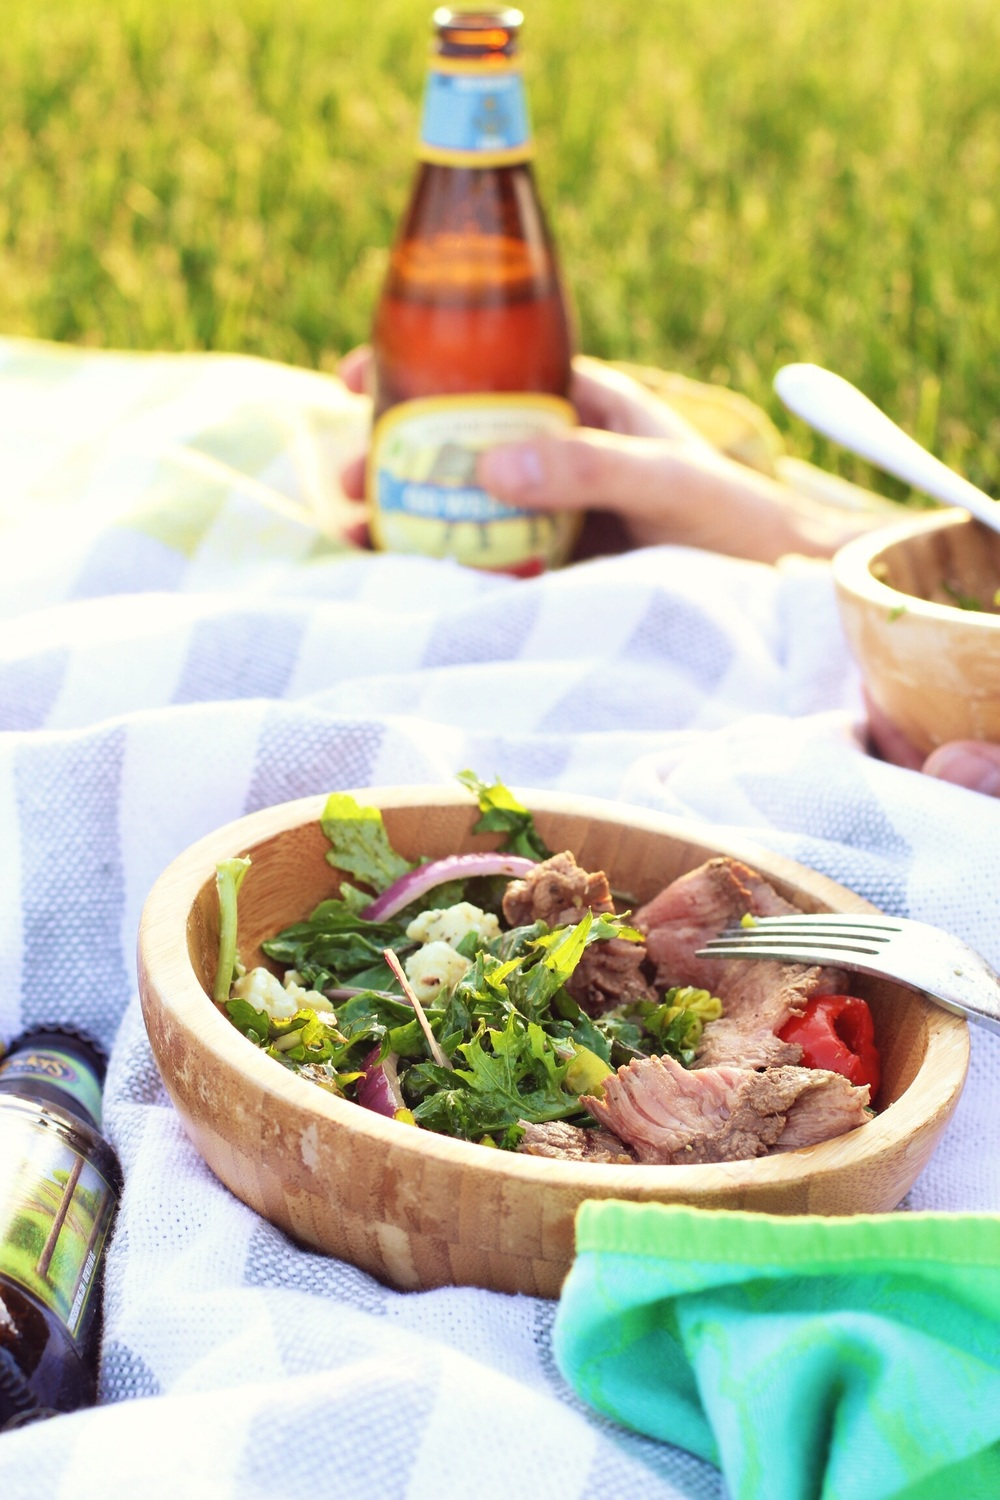 Picnic steak salad  - The Pastiche